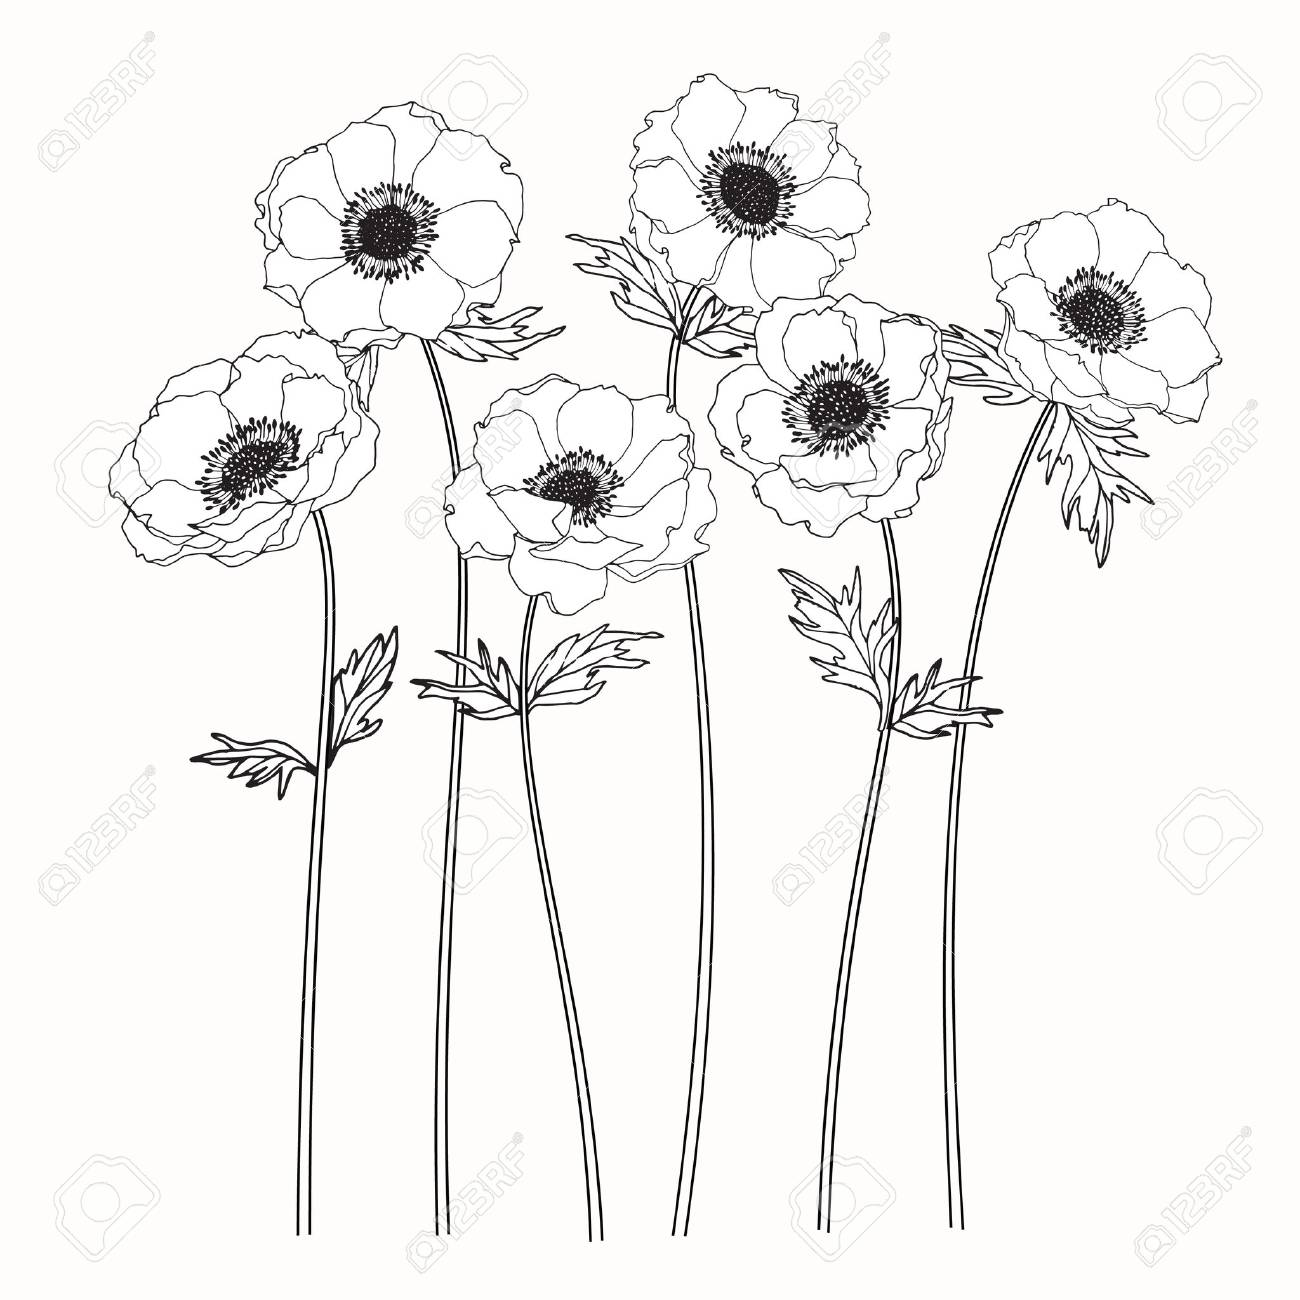 1300x1300 Anemone Flowers Drawing And Sketch With Line Art On White